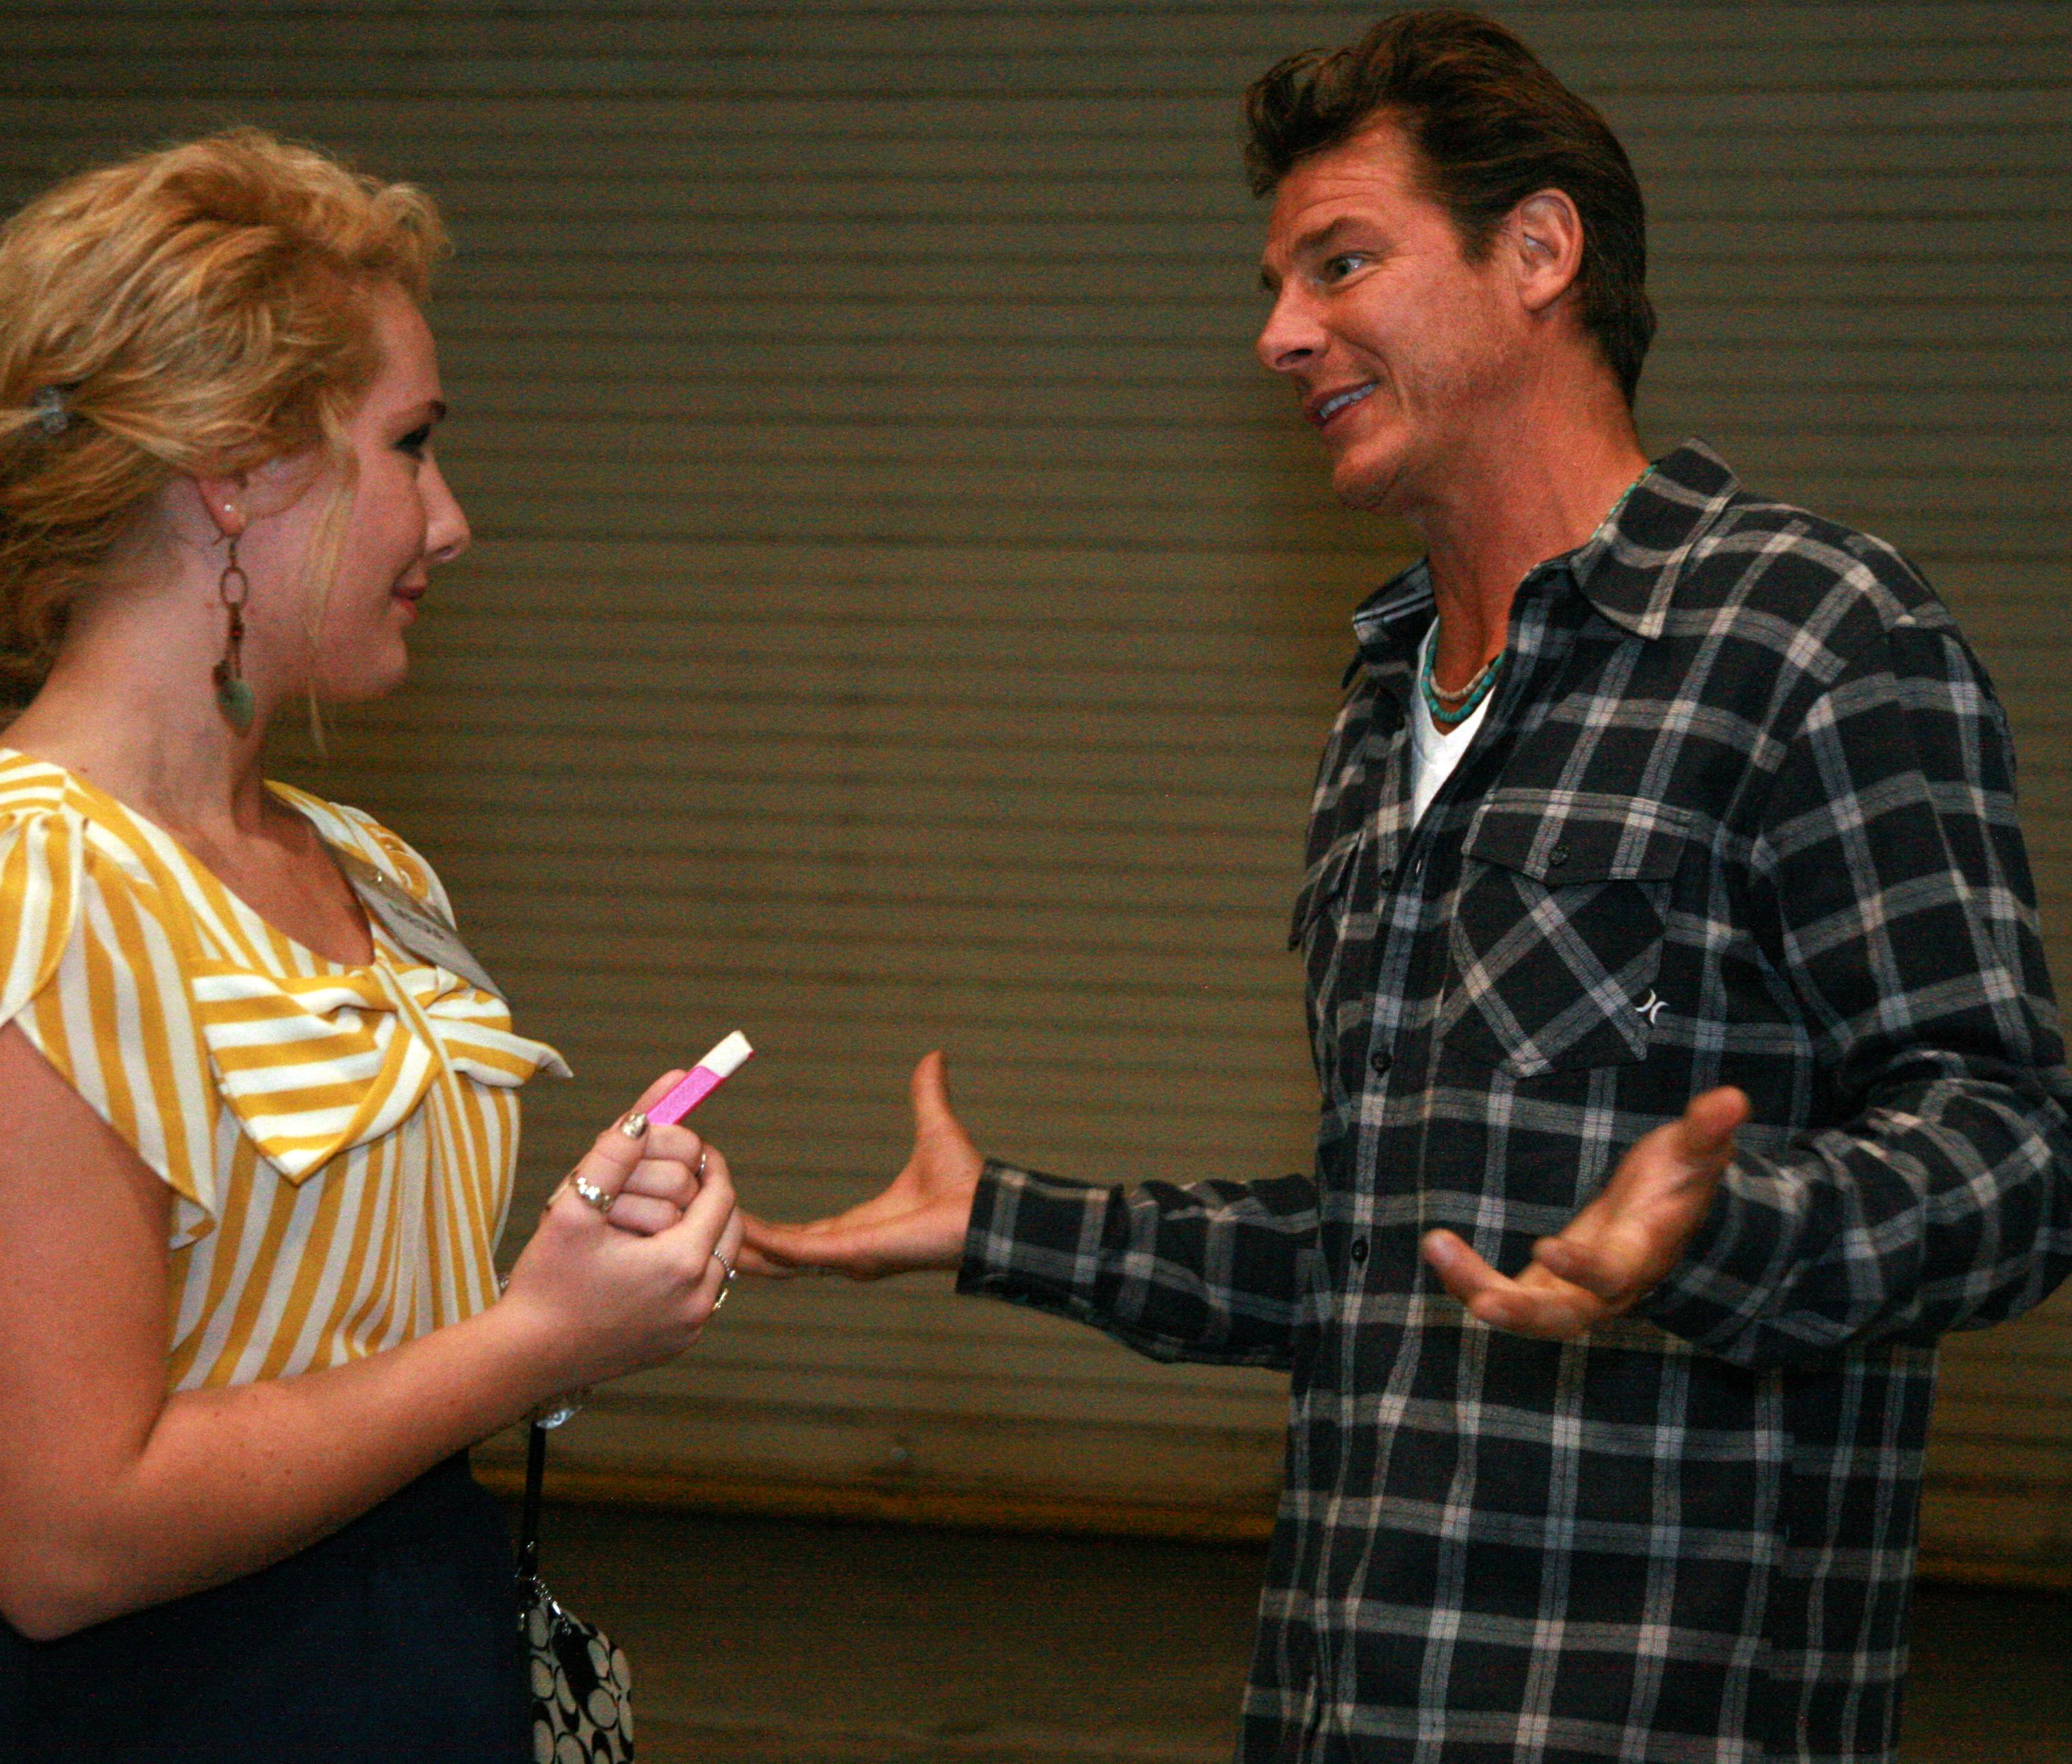 Home Makover: VIP Interview: Extreme Makeover Home Edition's Ty Pennington